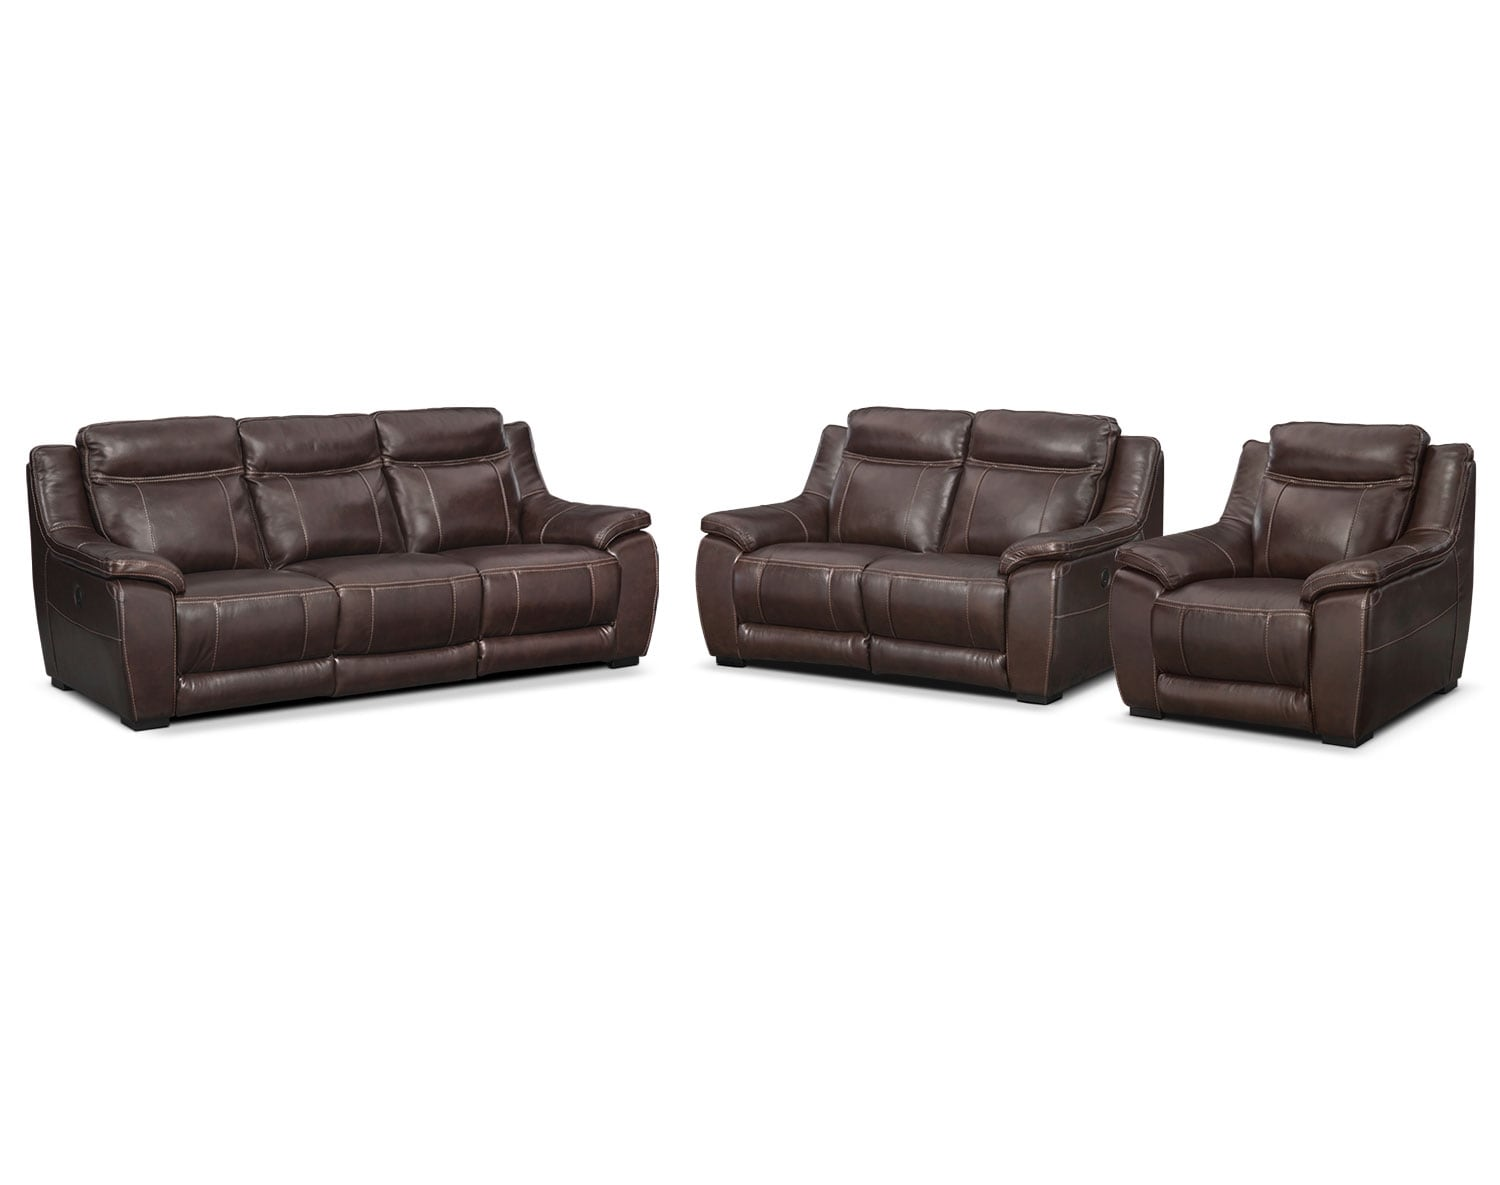 The Lido Brown Power Reclining Collection